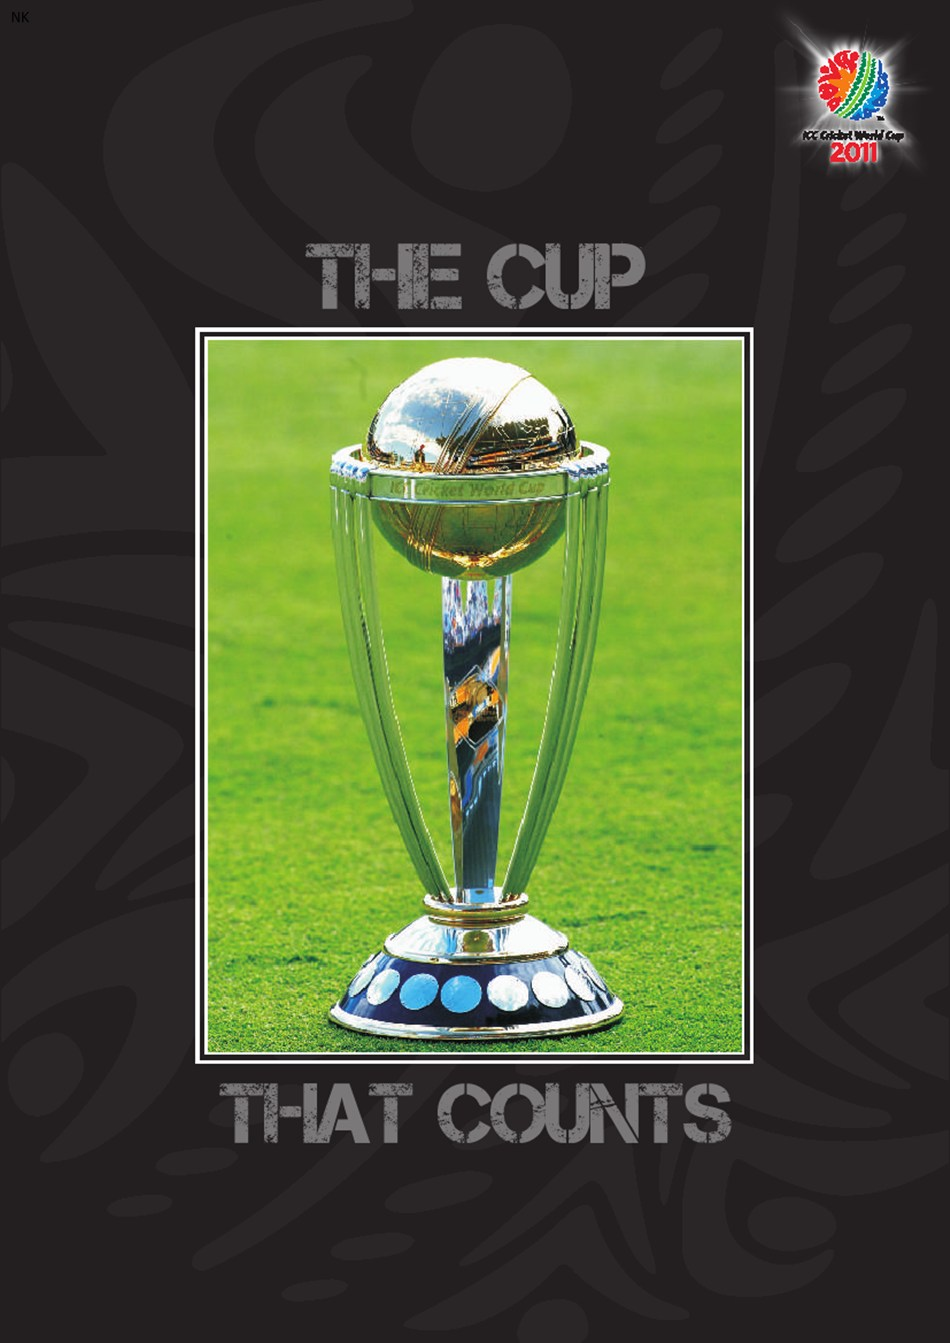 Who will win the Cricket World Cup 2011